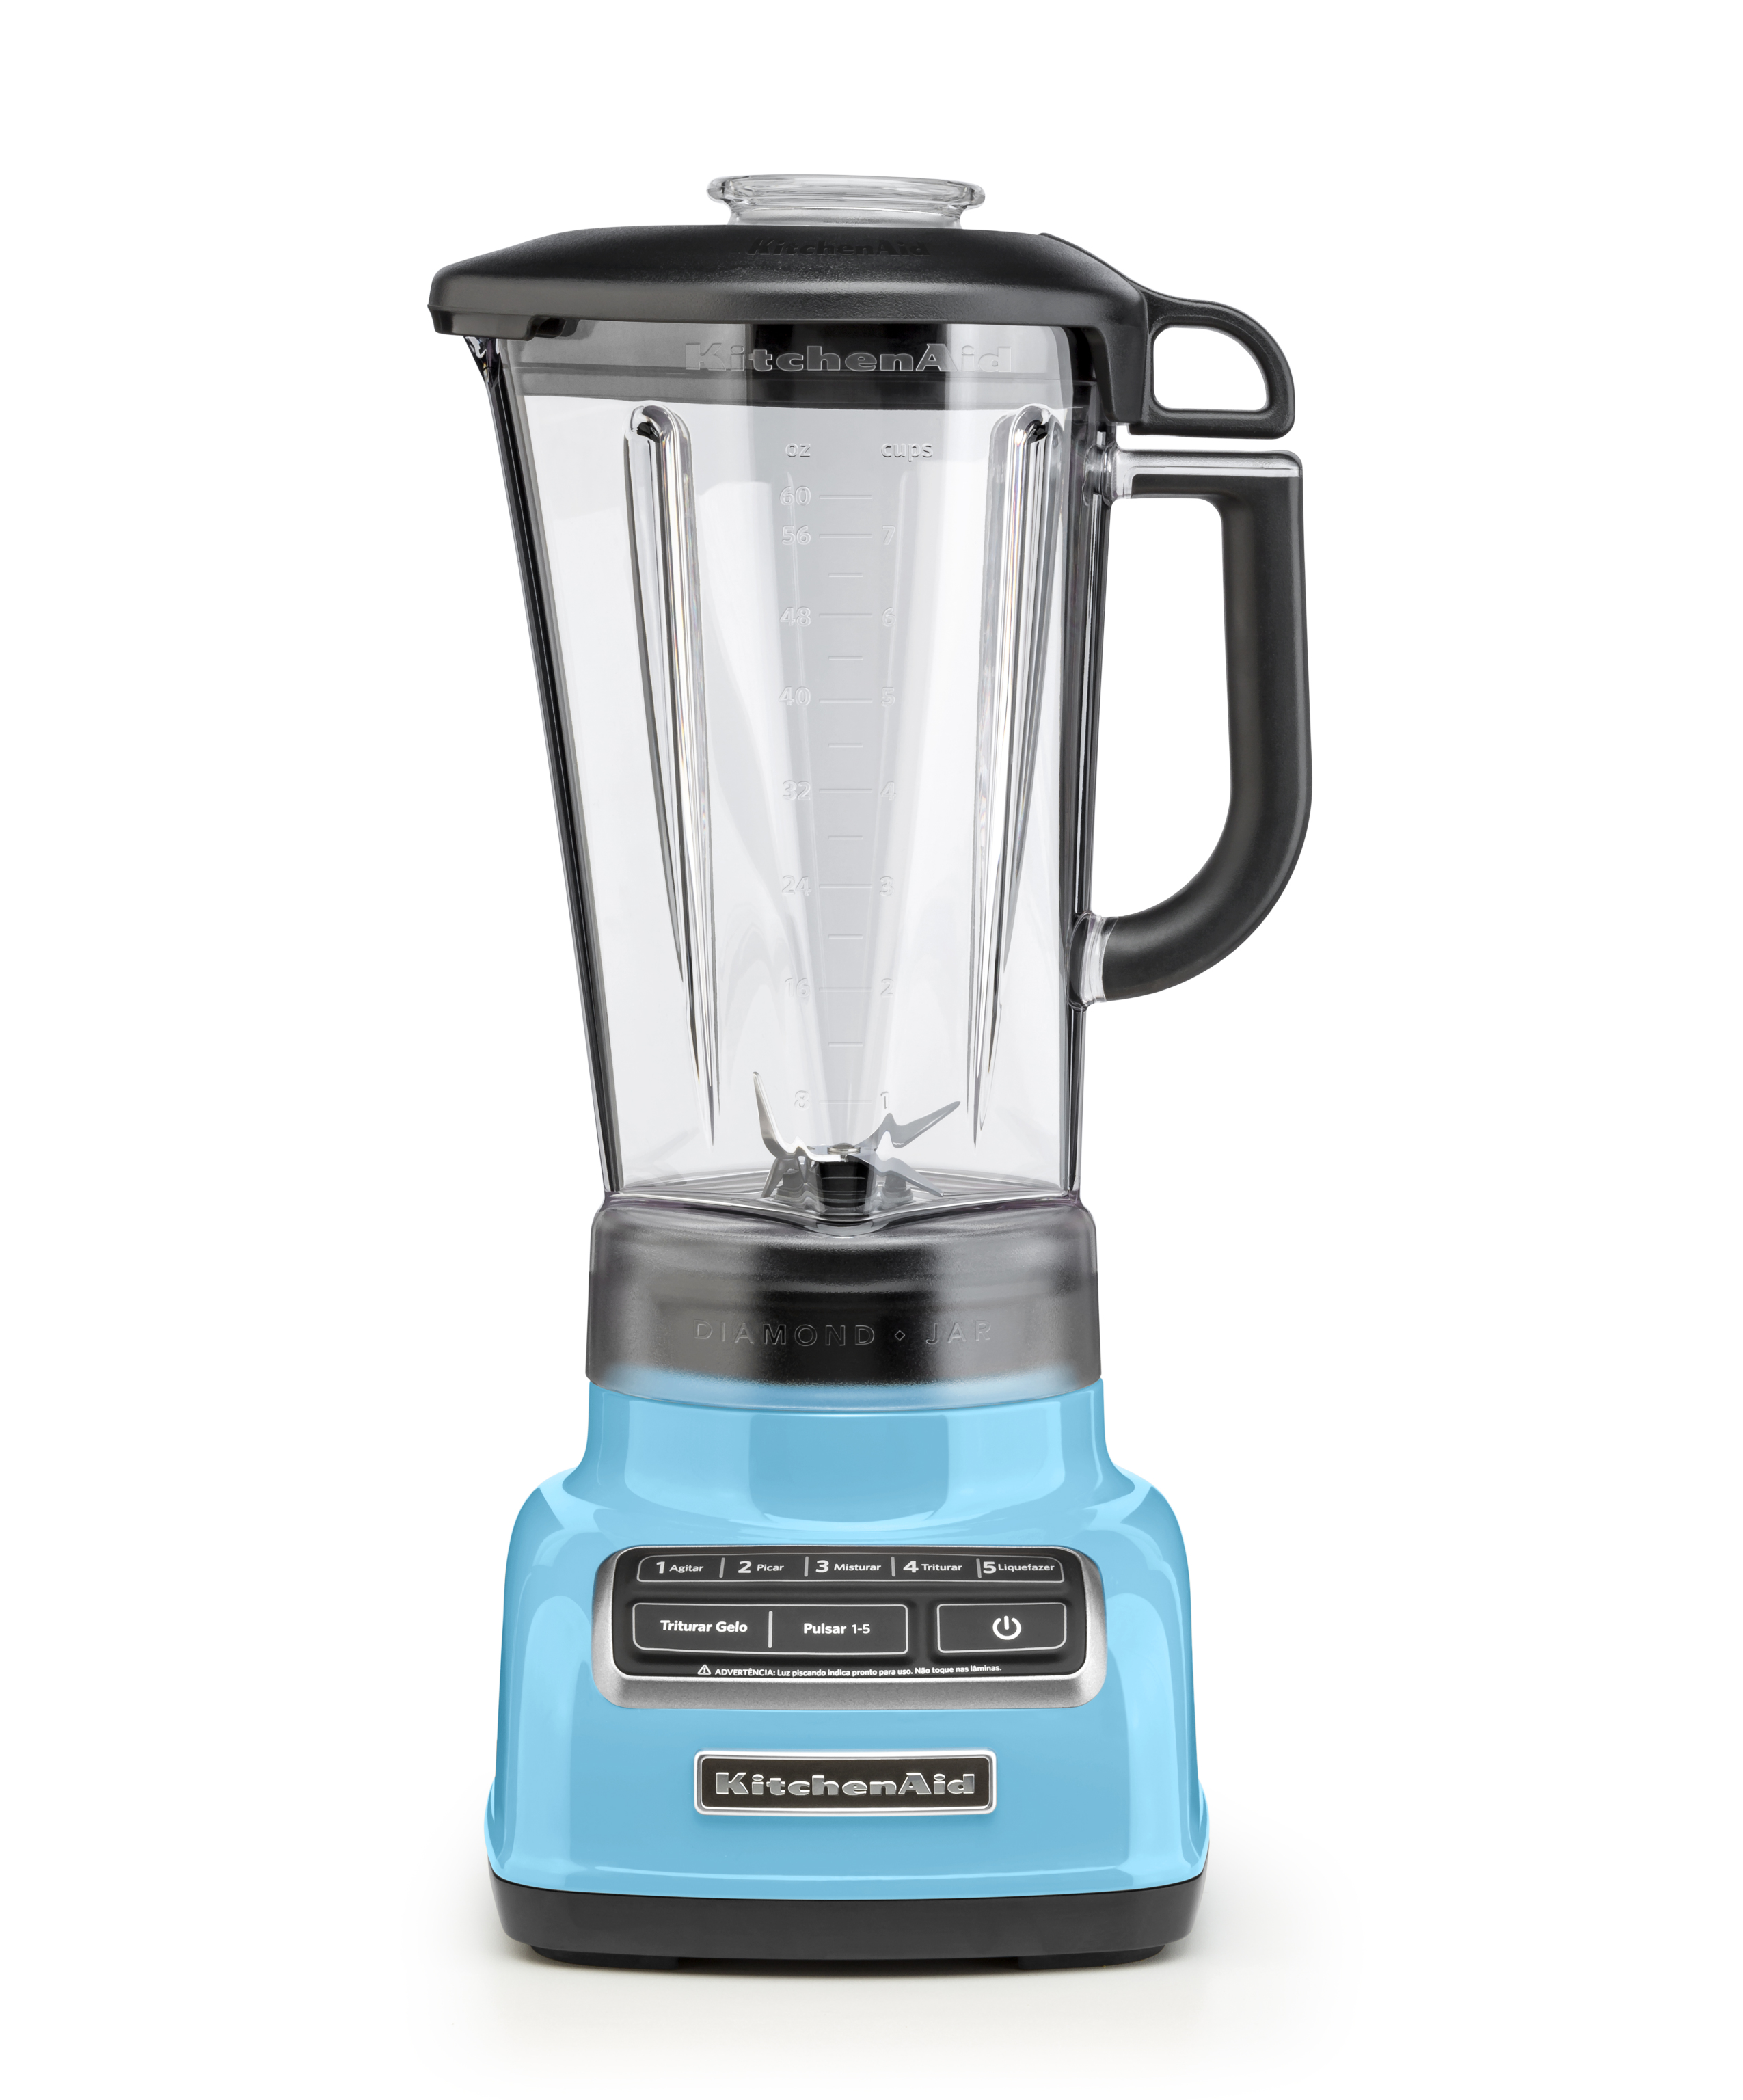 KitchendAid - Diamond Crystal Blue - R$ 1099